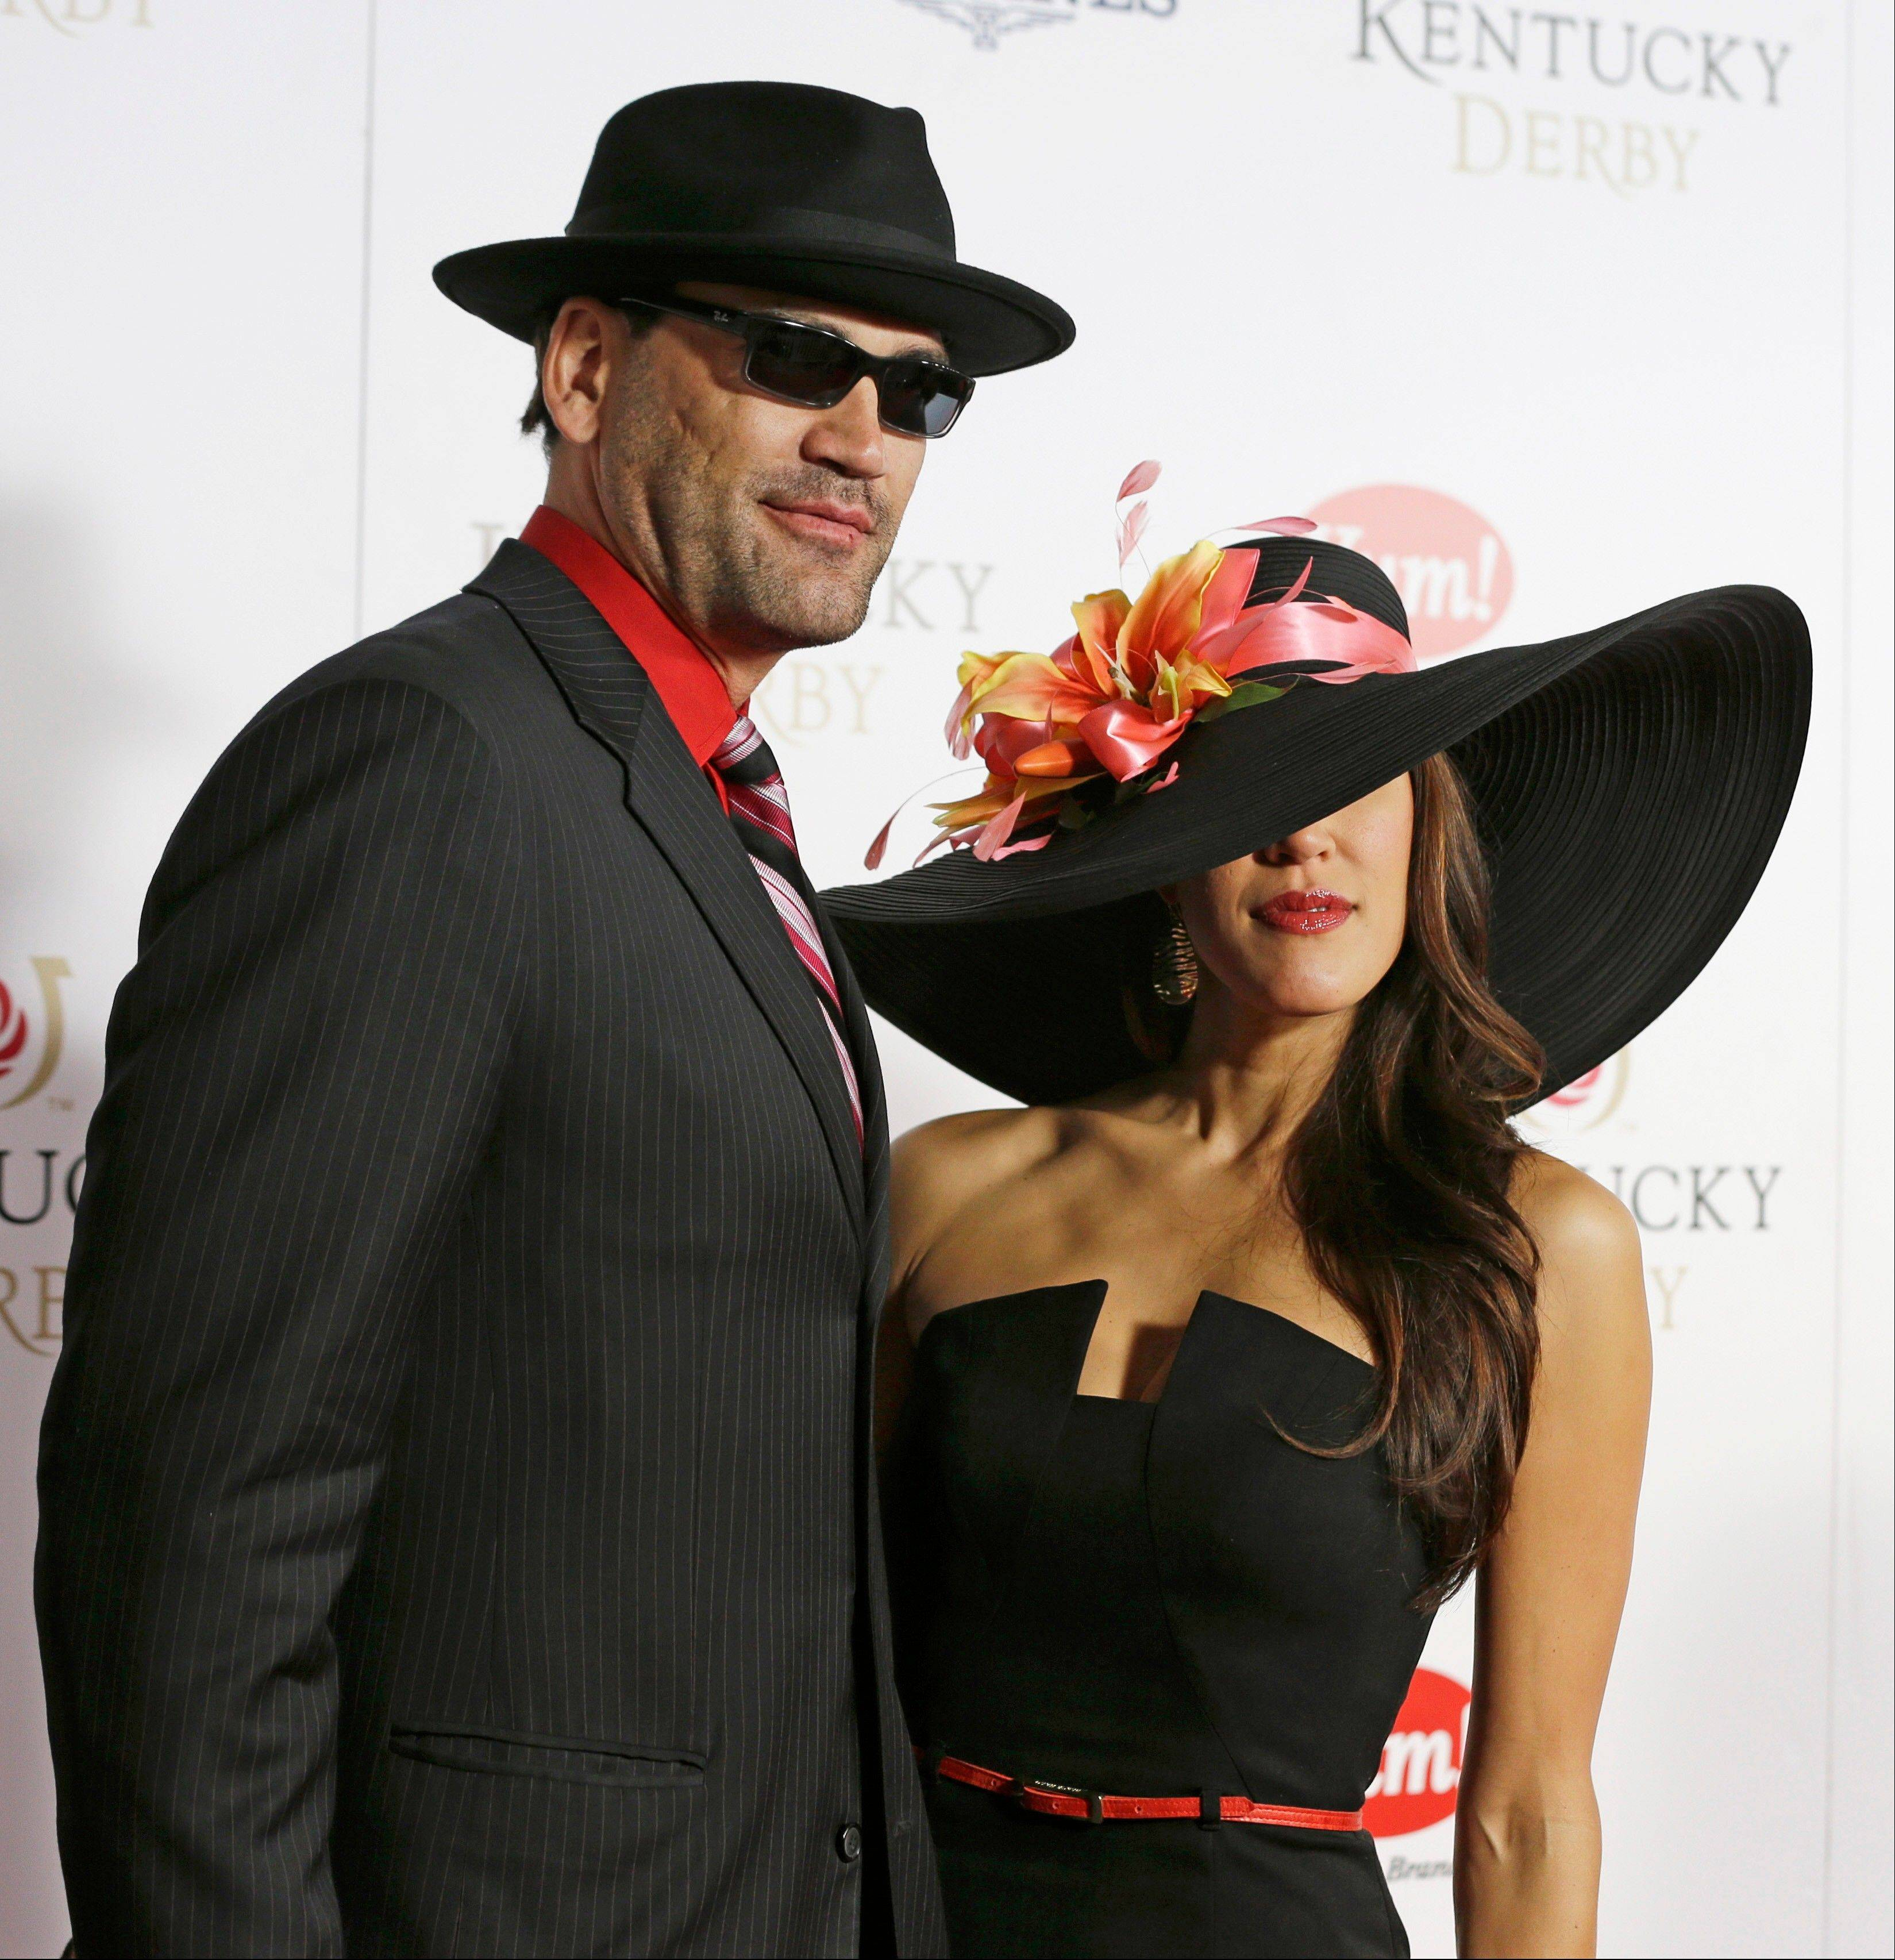 Retired NBA player Scot Pollard arrives with a friend to attend the 139th Kentucky Derby.